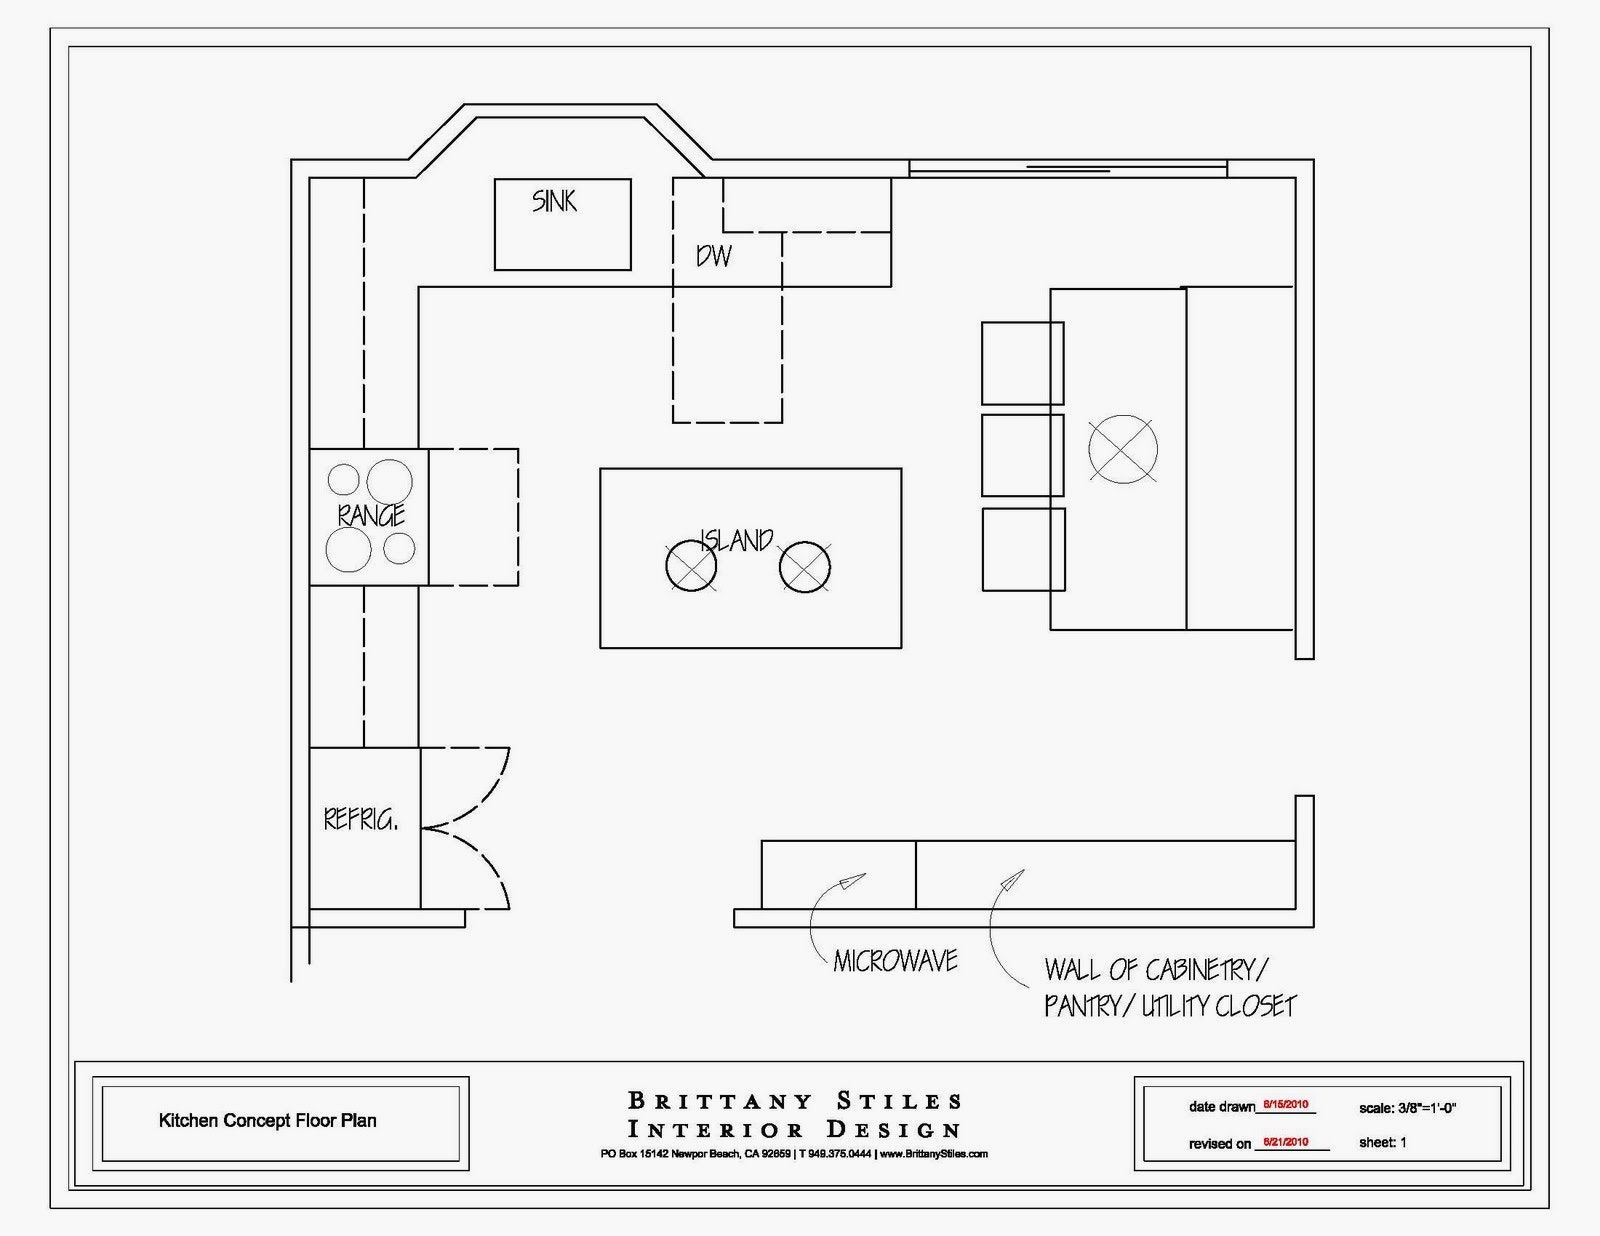 15 X 15 Kitchen Layout Maribo Dreams For My Home In 2019